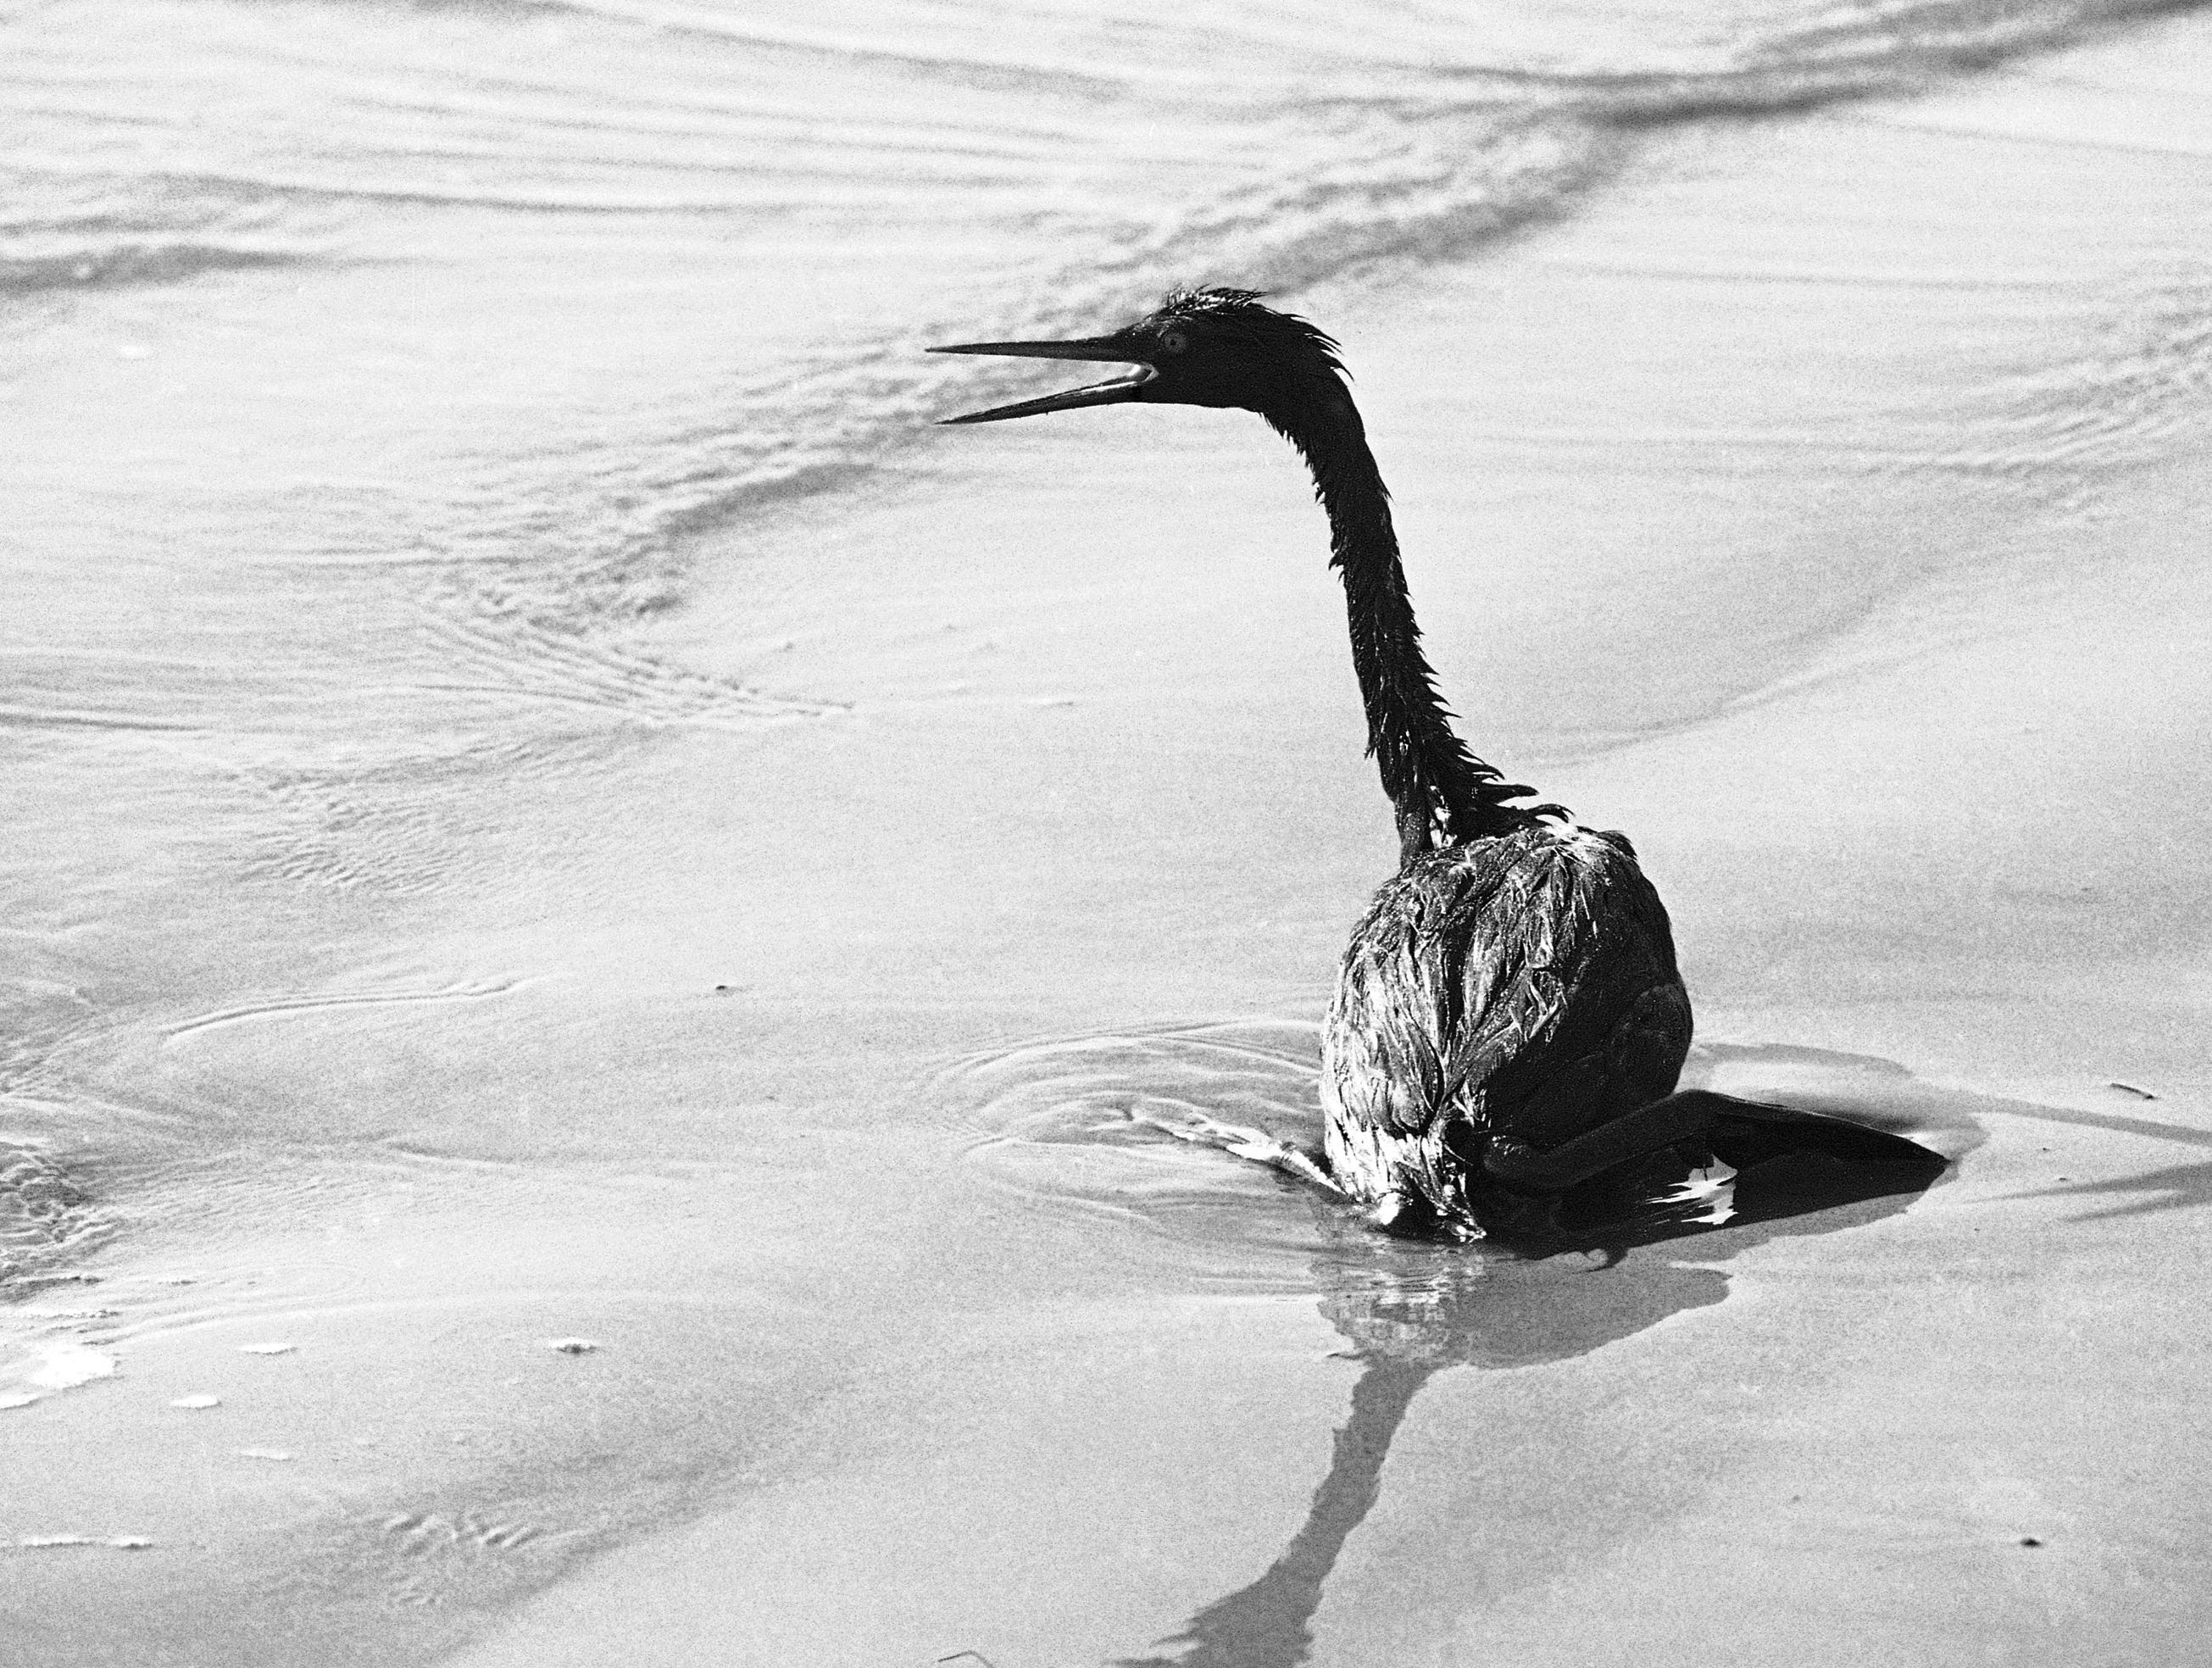 FILE - In this April 11, 1969, file photo, a Grebe in seen on a beach in Santa Barbara, Calif.  An oil slick stretched across 9 miles of coastal waters Thursday, May 21, 2015, after a pipeline rupture spilled thousands of gallons of crude just north of Santa Barbara, along the same stretch of coastline as the 1969 spill. (AP Photo/Wally Fong,File)